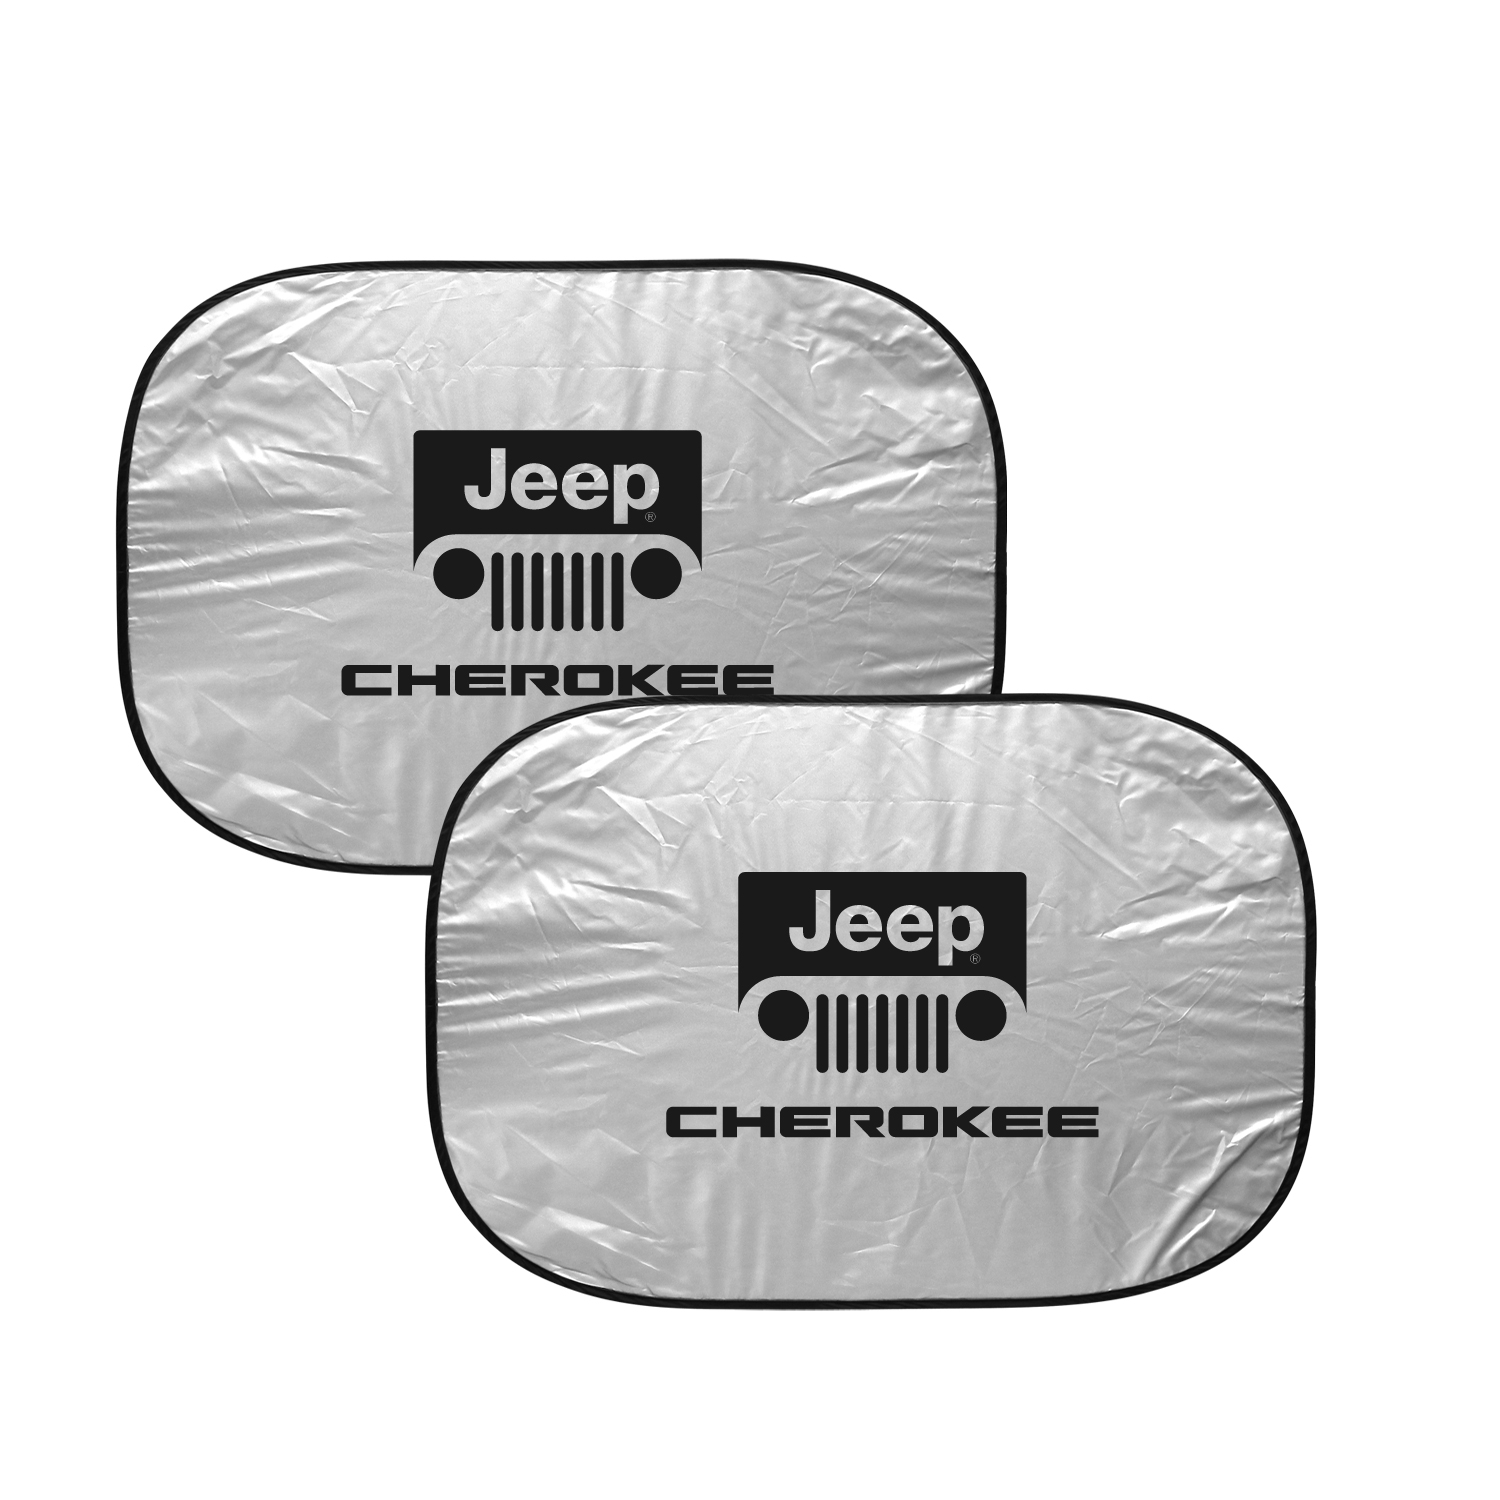 "Jeep Cherokee Dual Panels 2-28"" W x 24"" L Easy Folding Windshield Sun Shade"